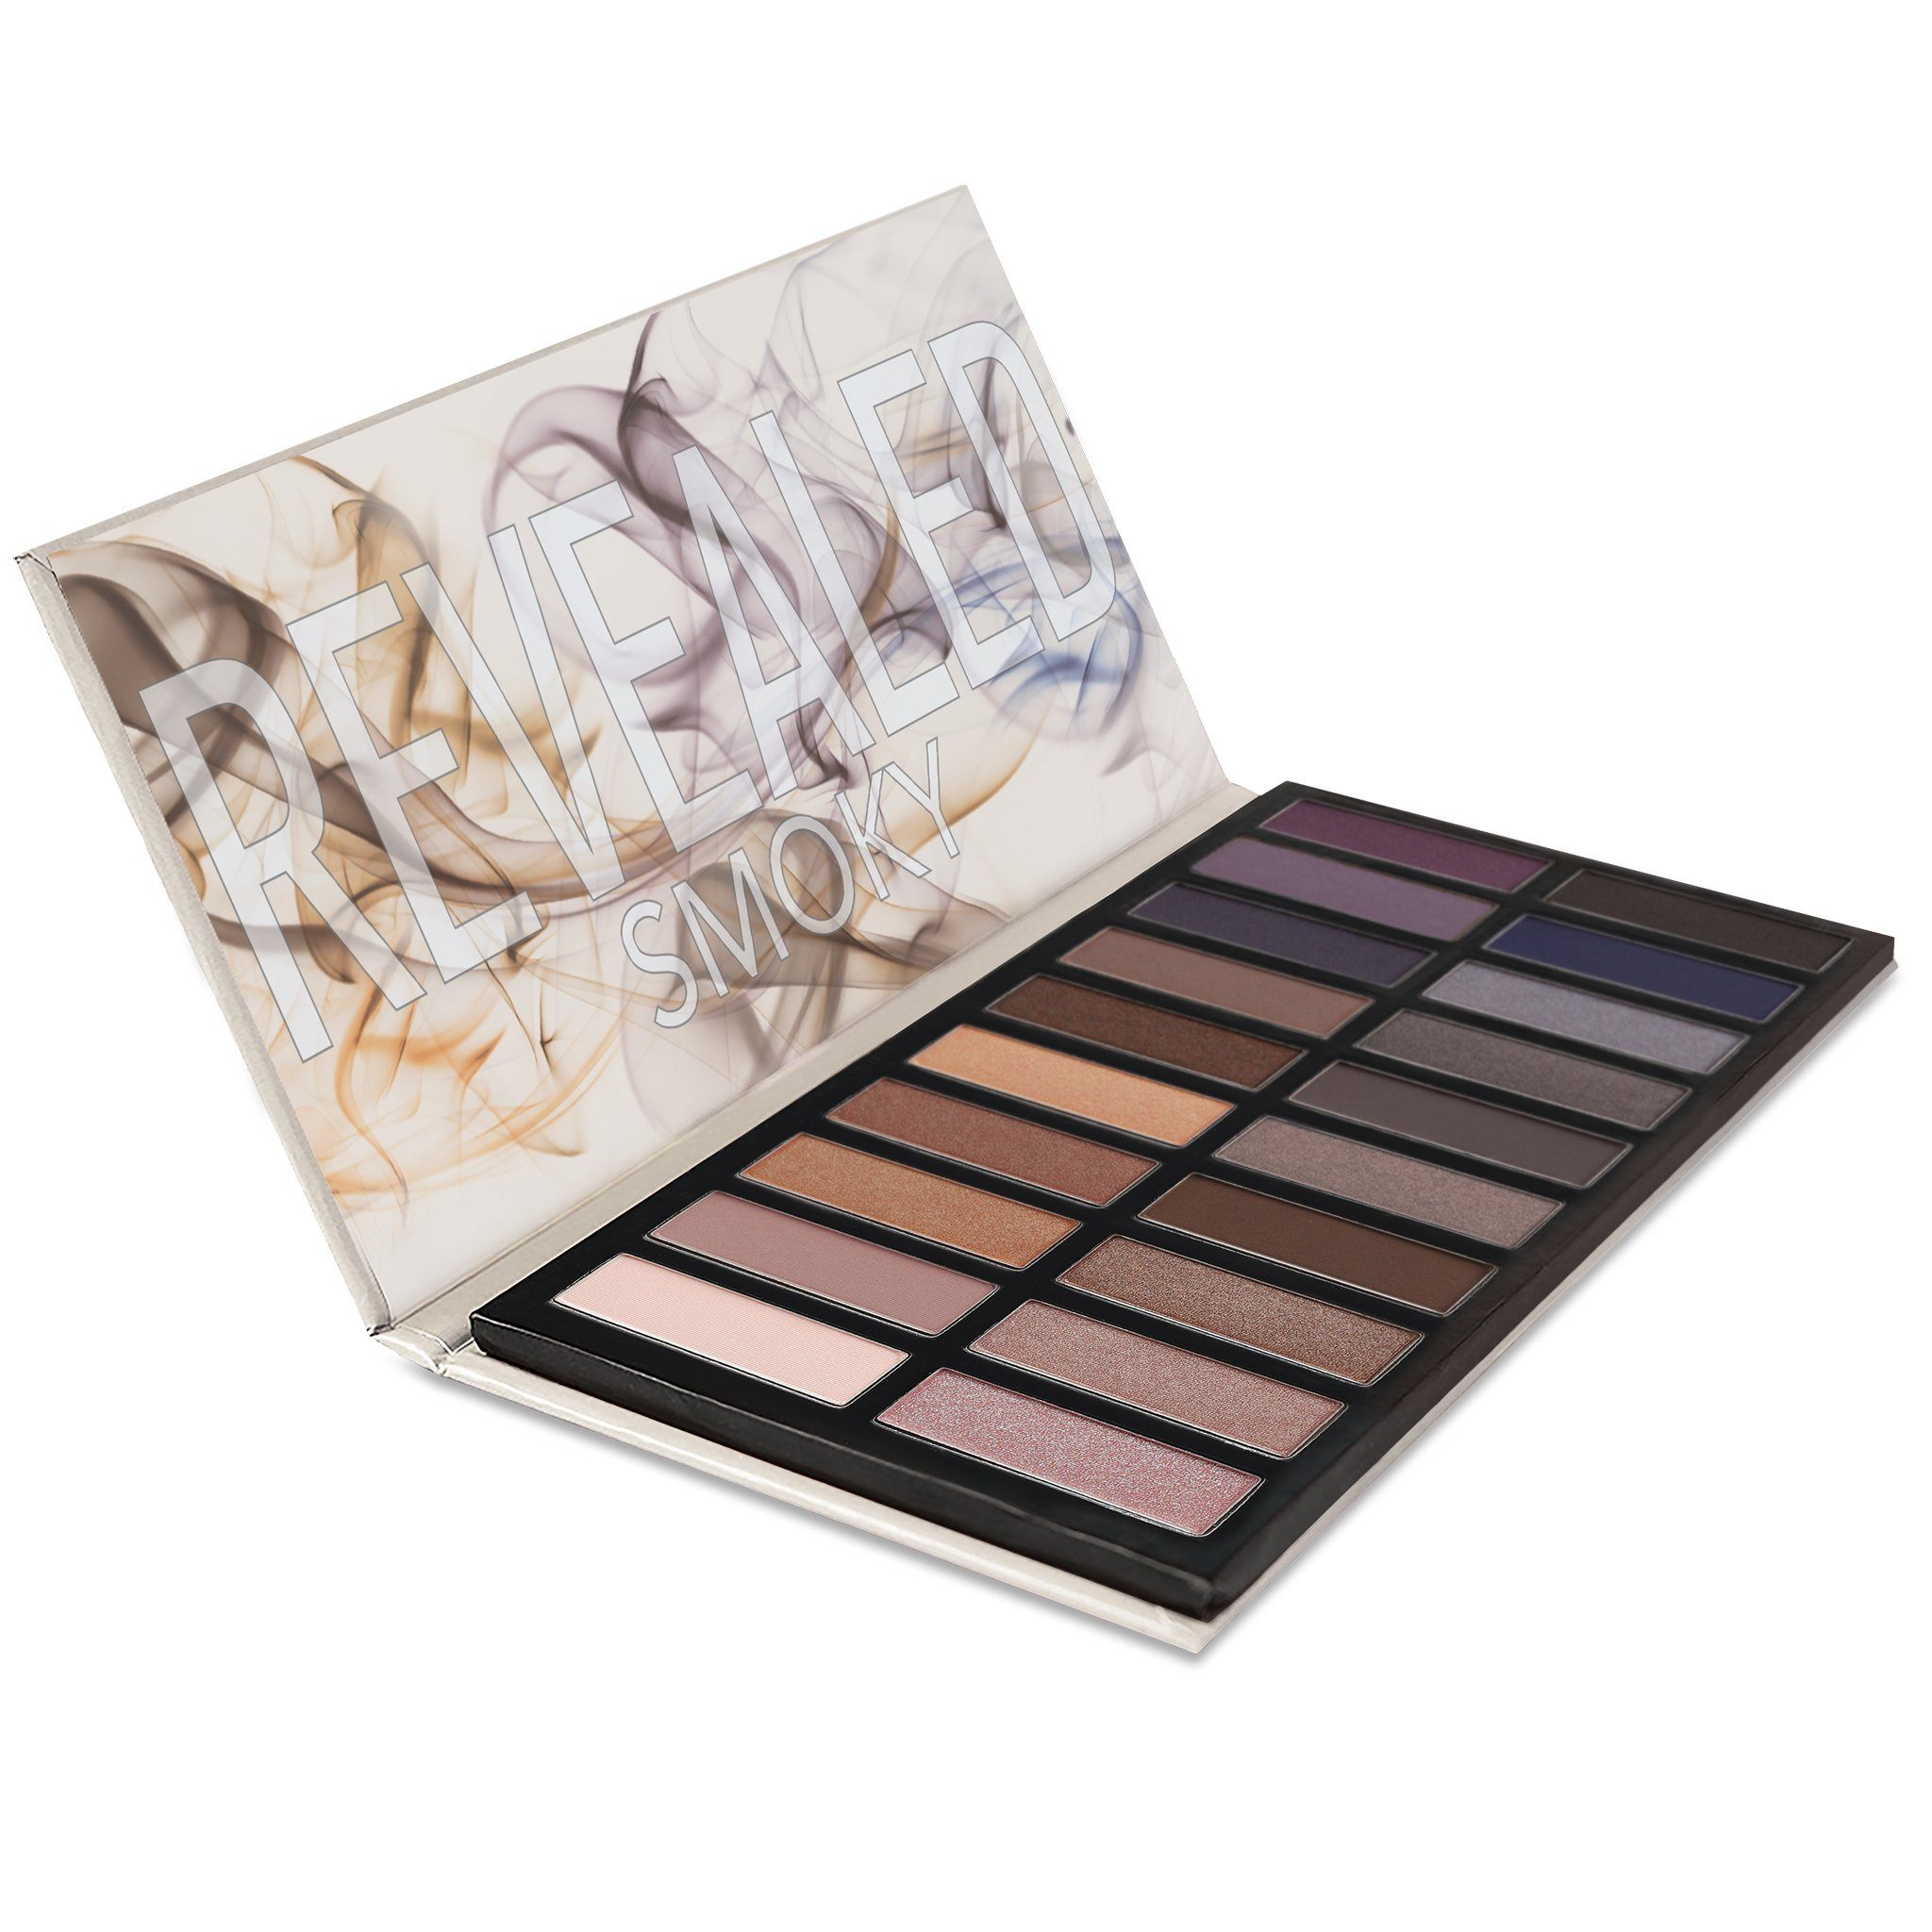 Coastal Scents Revealed Smoky Eye Shadow Palette (PL-039)